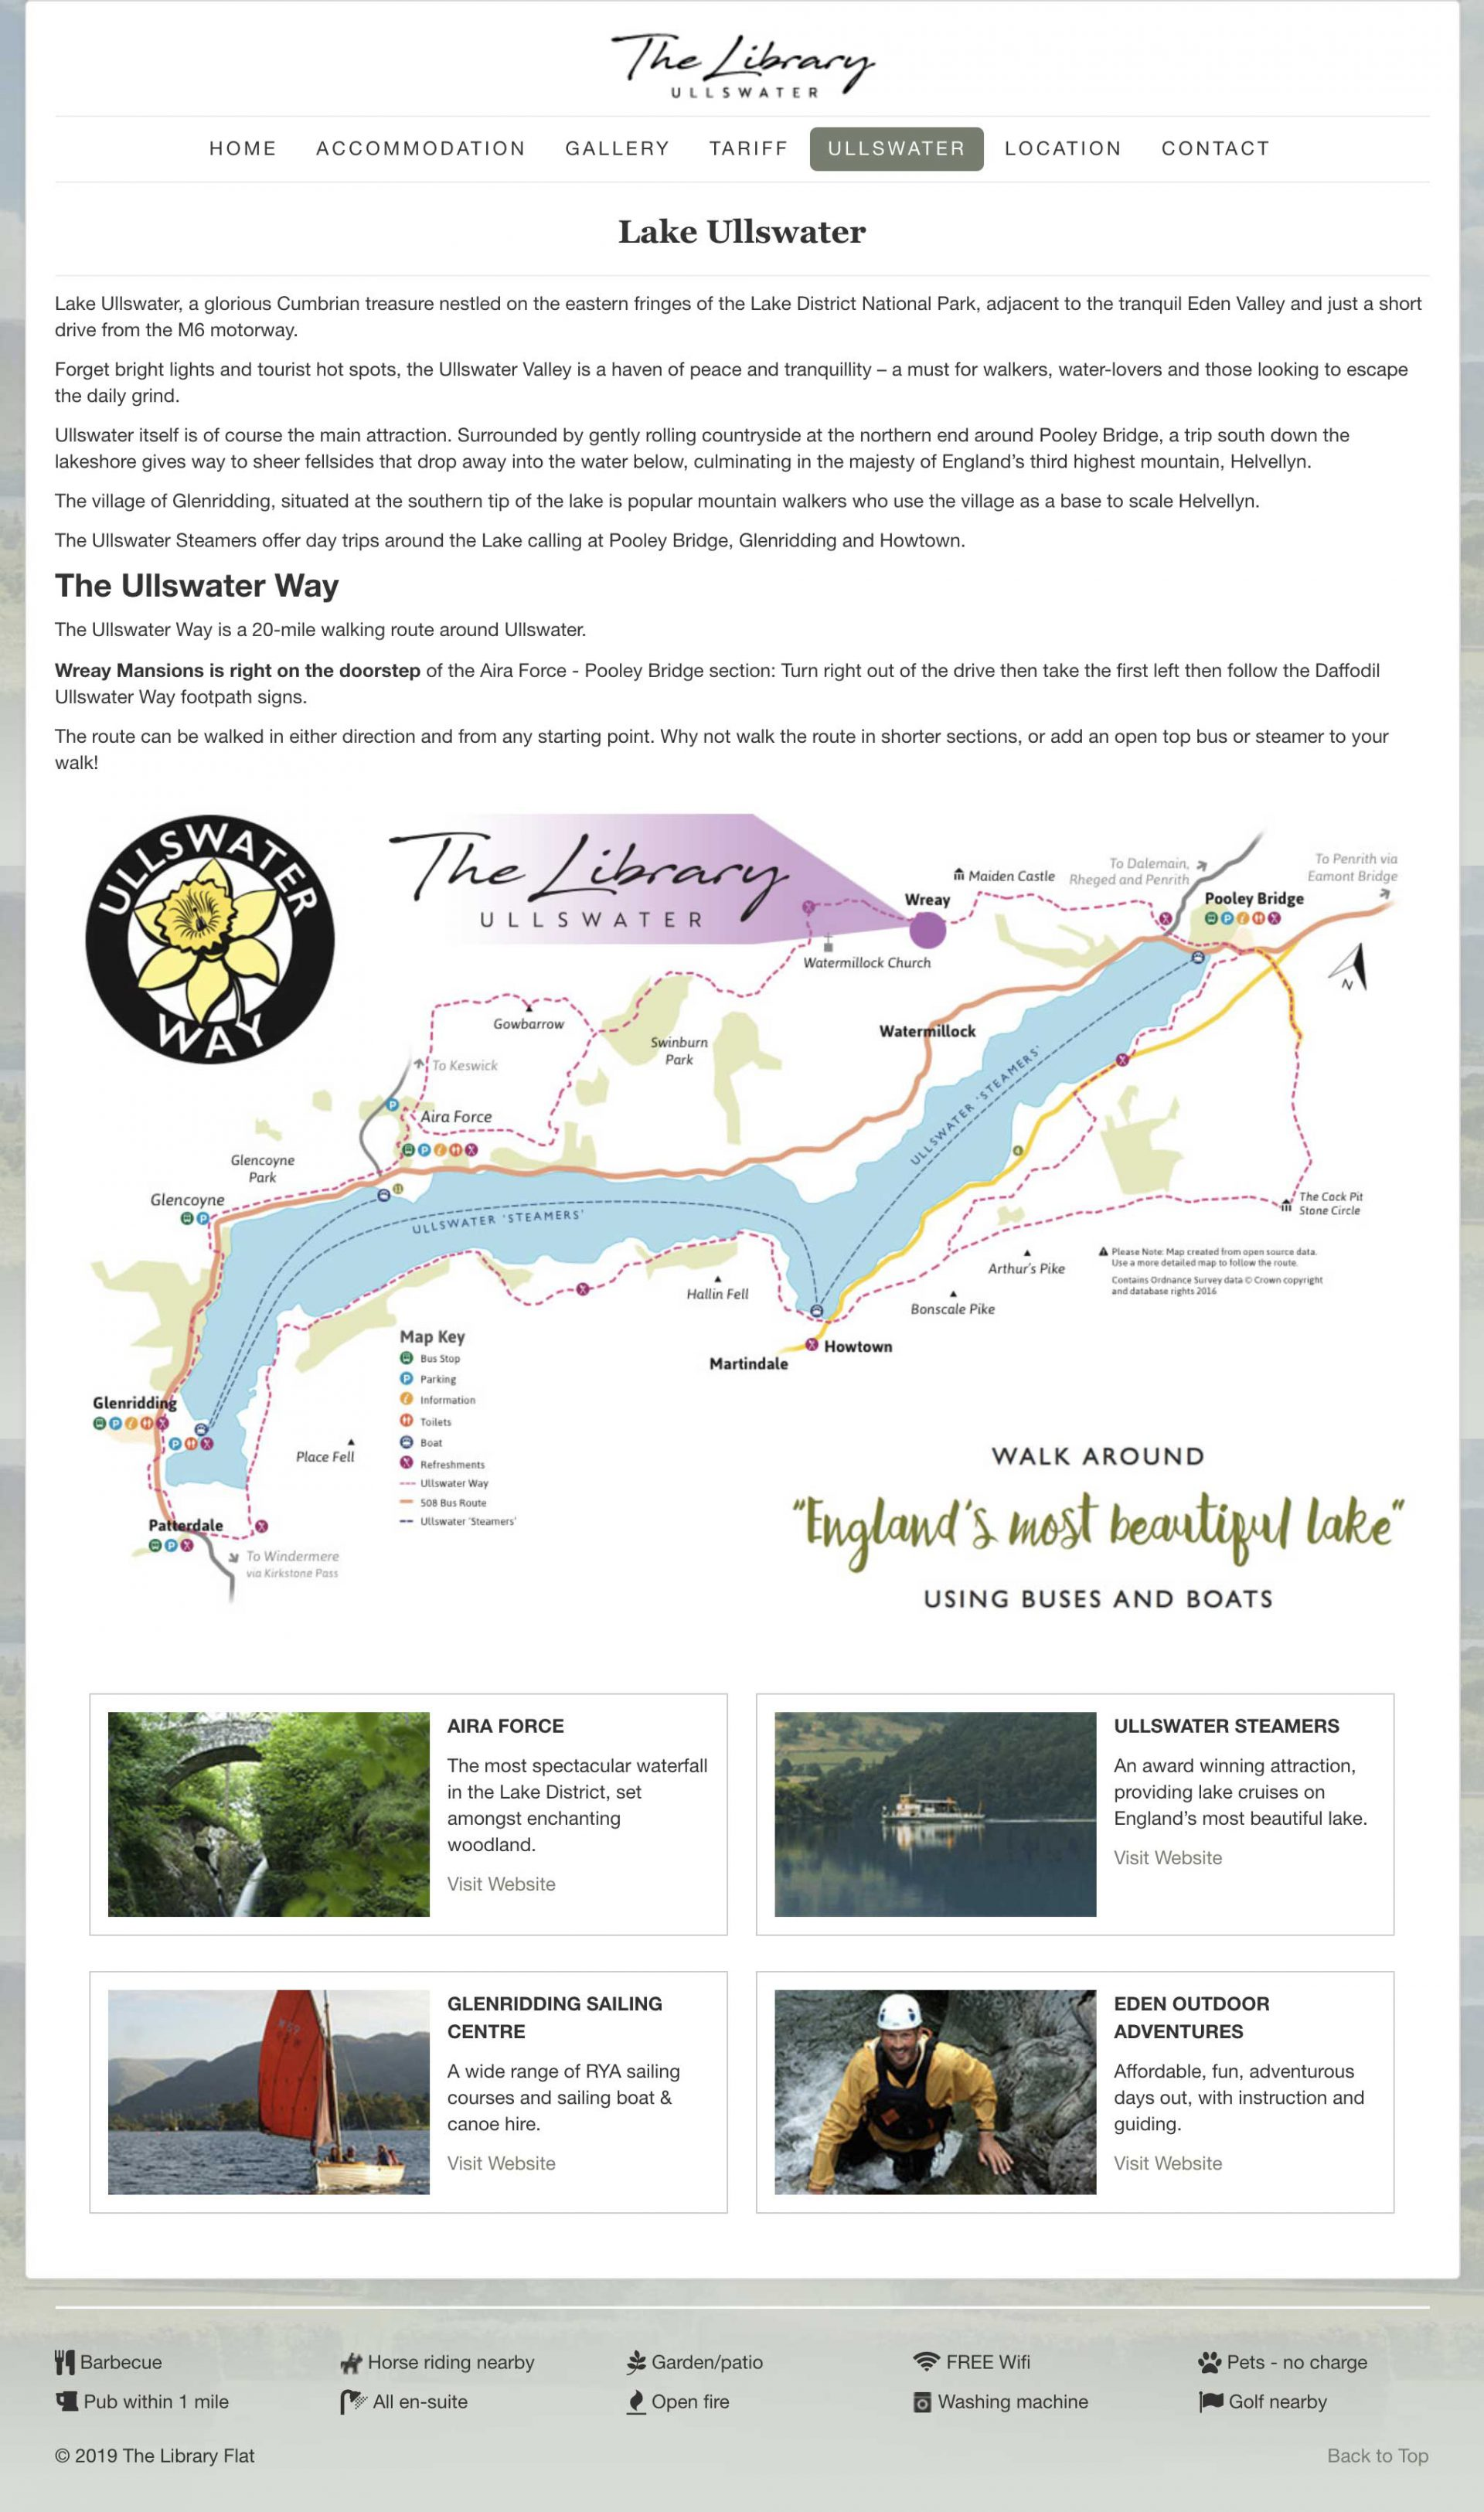 website design - The Library, Ullswater